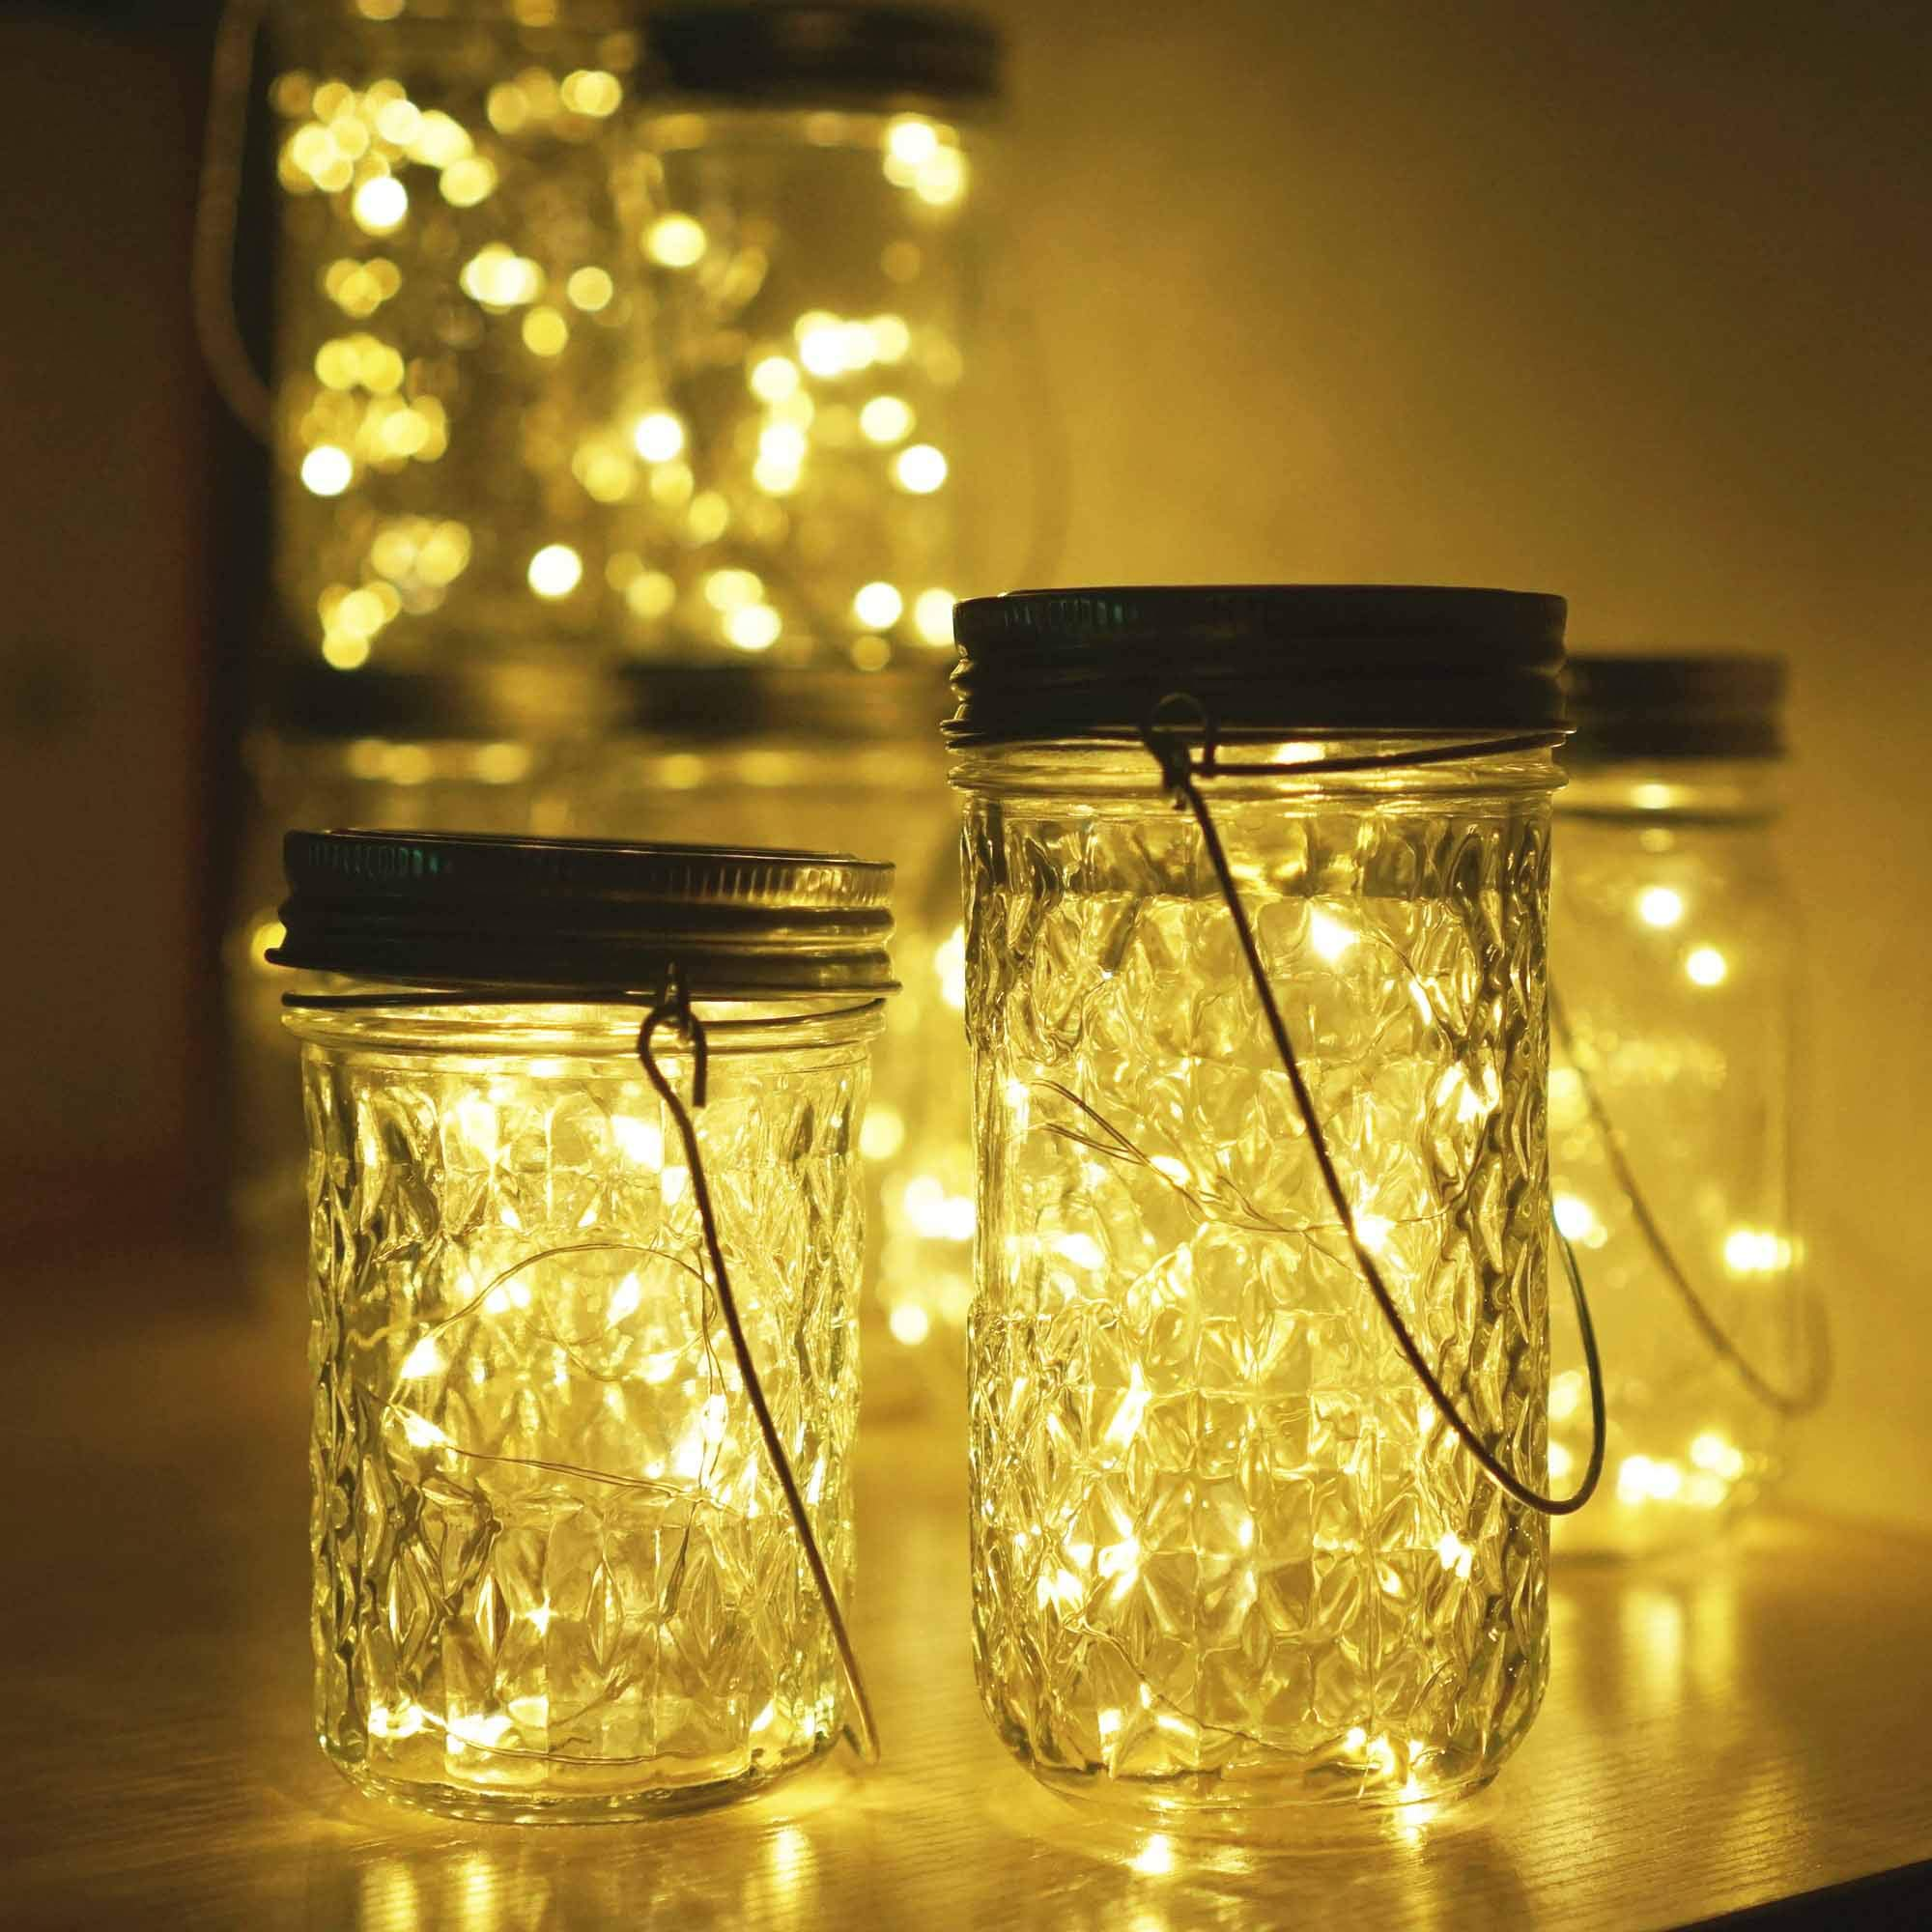 Miaro 6 Pack Mason Jar Lights, 10 LED Solar Warm White Fairy String Lights Lids Insert for Garden Deck Patio Party Wedding Christmas Decorative Lighting Fit for Regular Mouth Jars with Hangers by Miaro (Image #6)